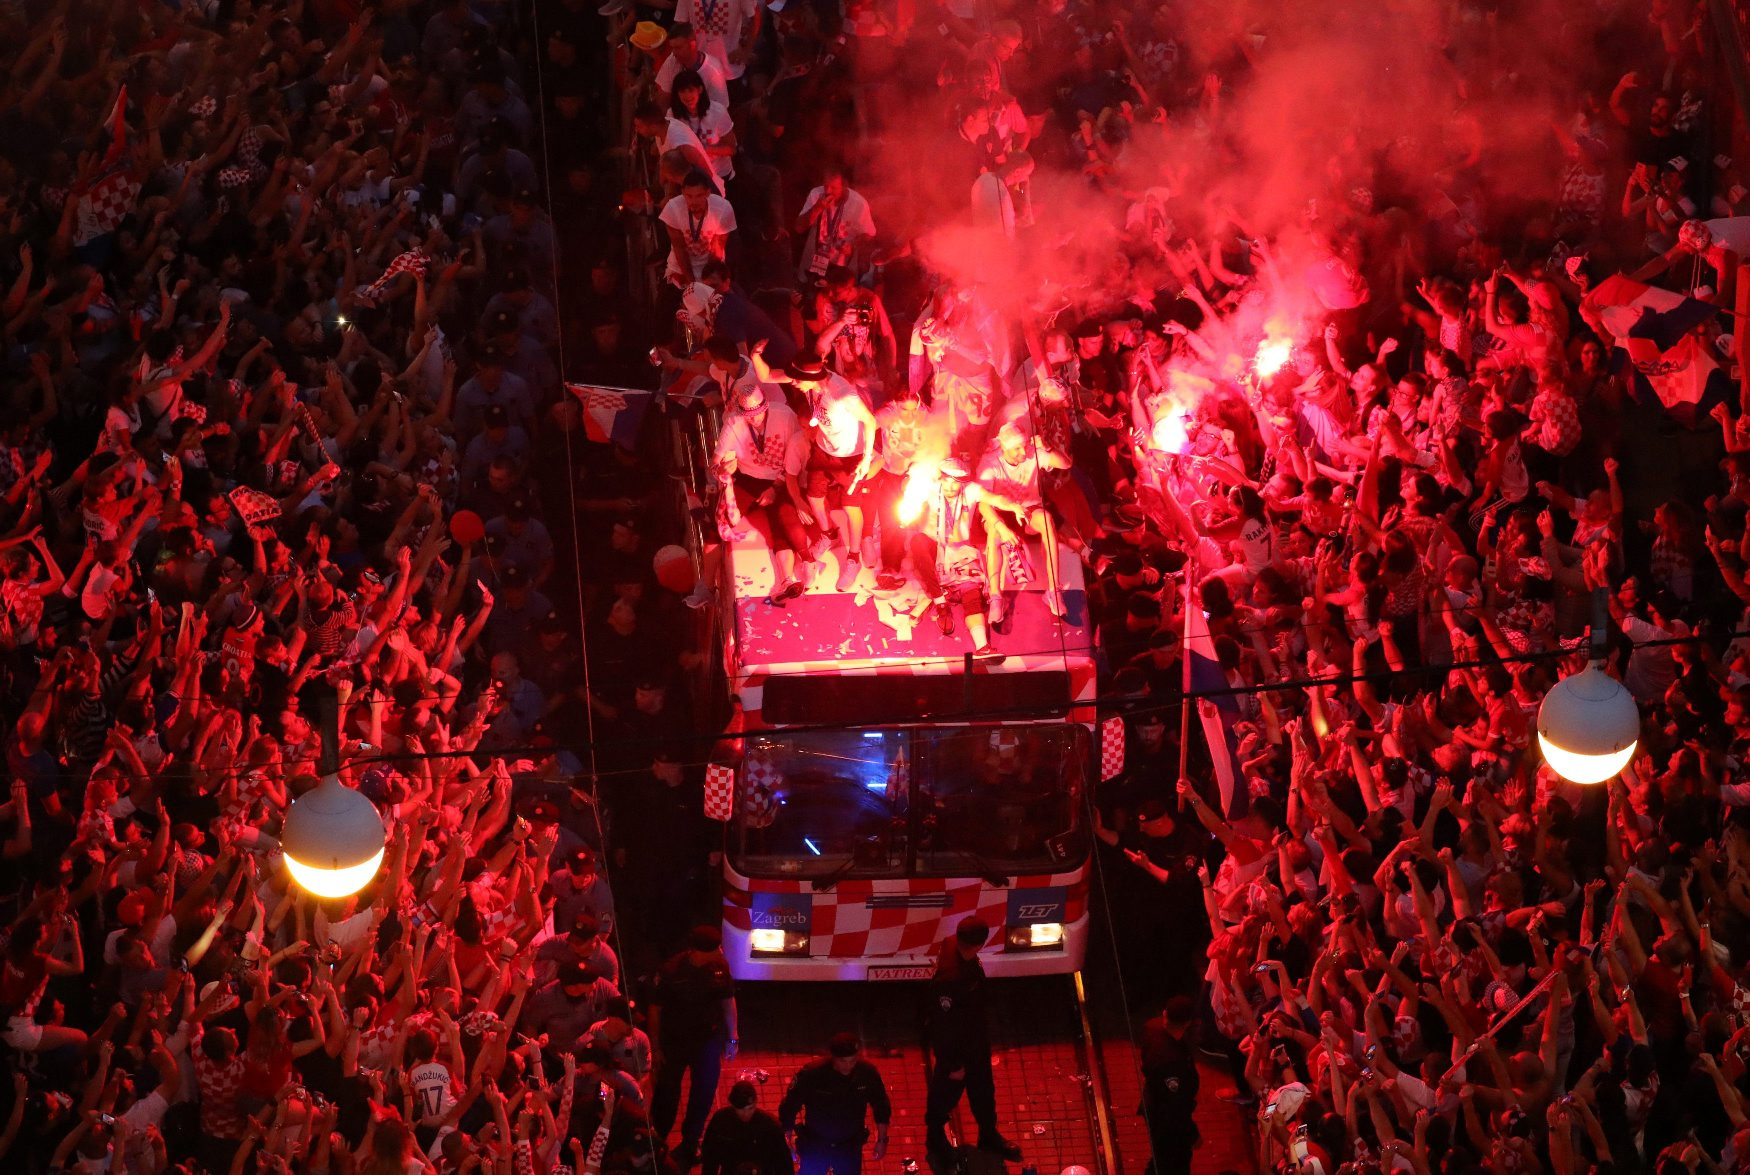 Soccer Football - World Cup - The Croatia team return from the World Cup in Russia - Zagreb, Croatia - July 16, 2018   Fans let off flares while the Croatia team bus goes past during the parade   REUTERS/Marko Djurica